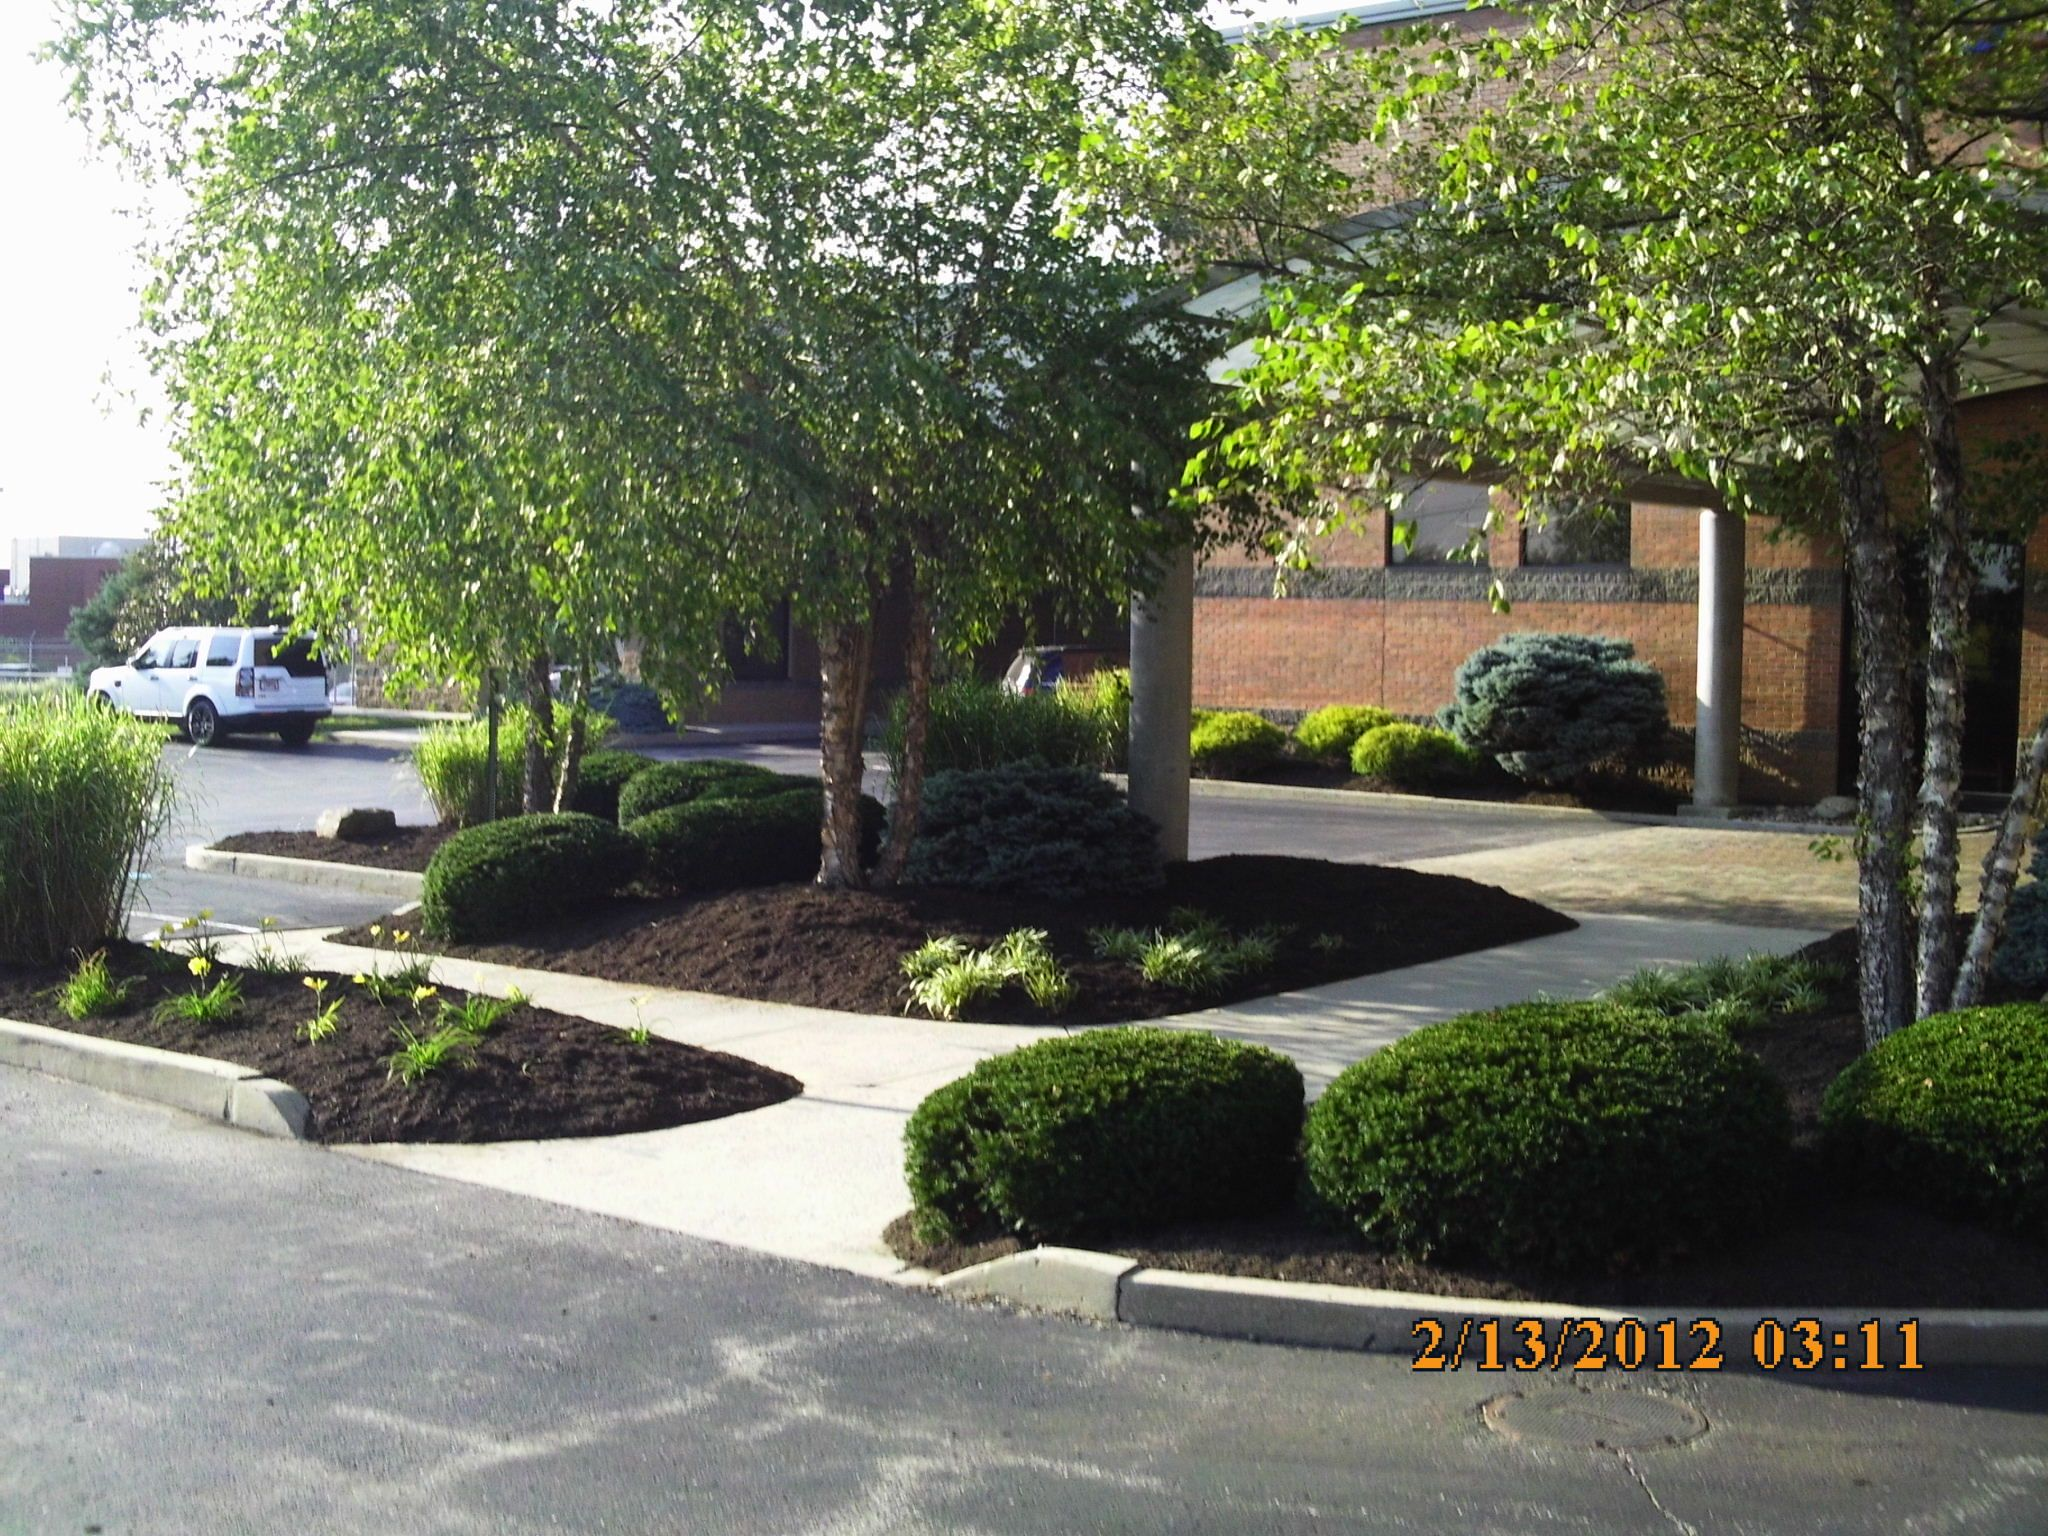 Landscaping Job 20 Mulch Spring Cleanup Commercial Landscaping Landscaping Jobs Mulch